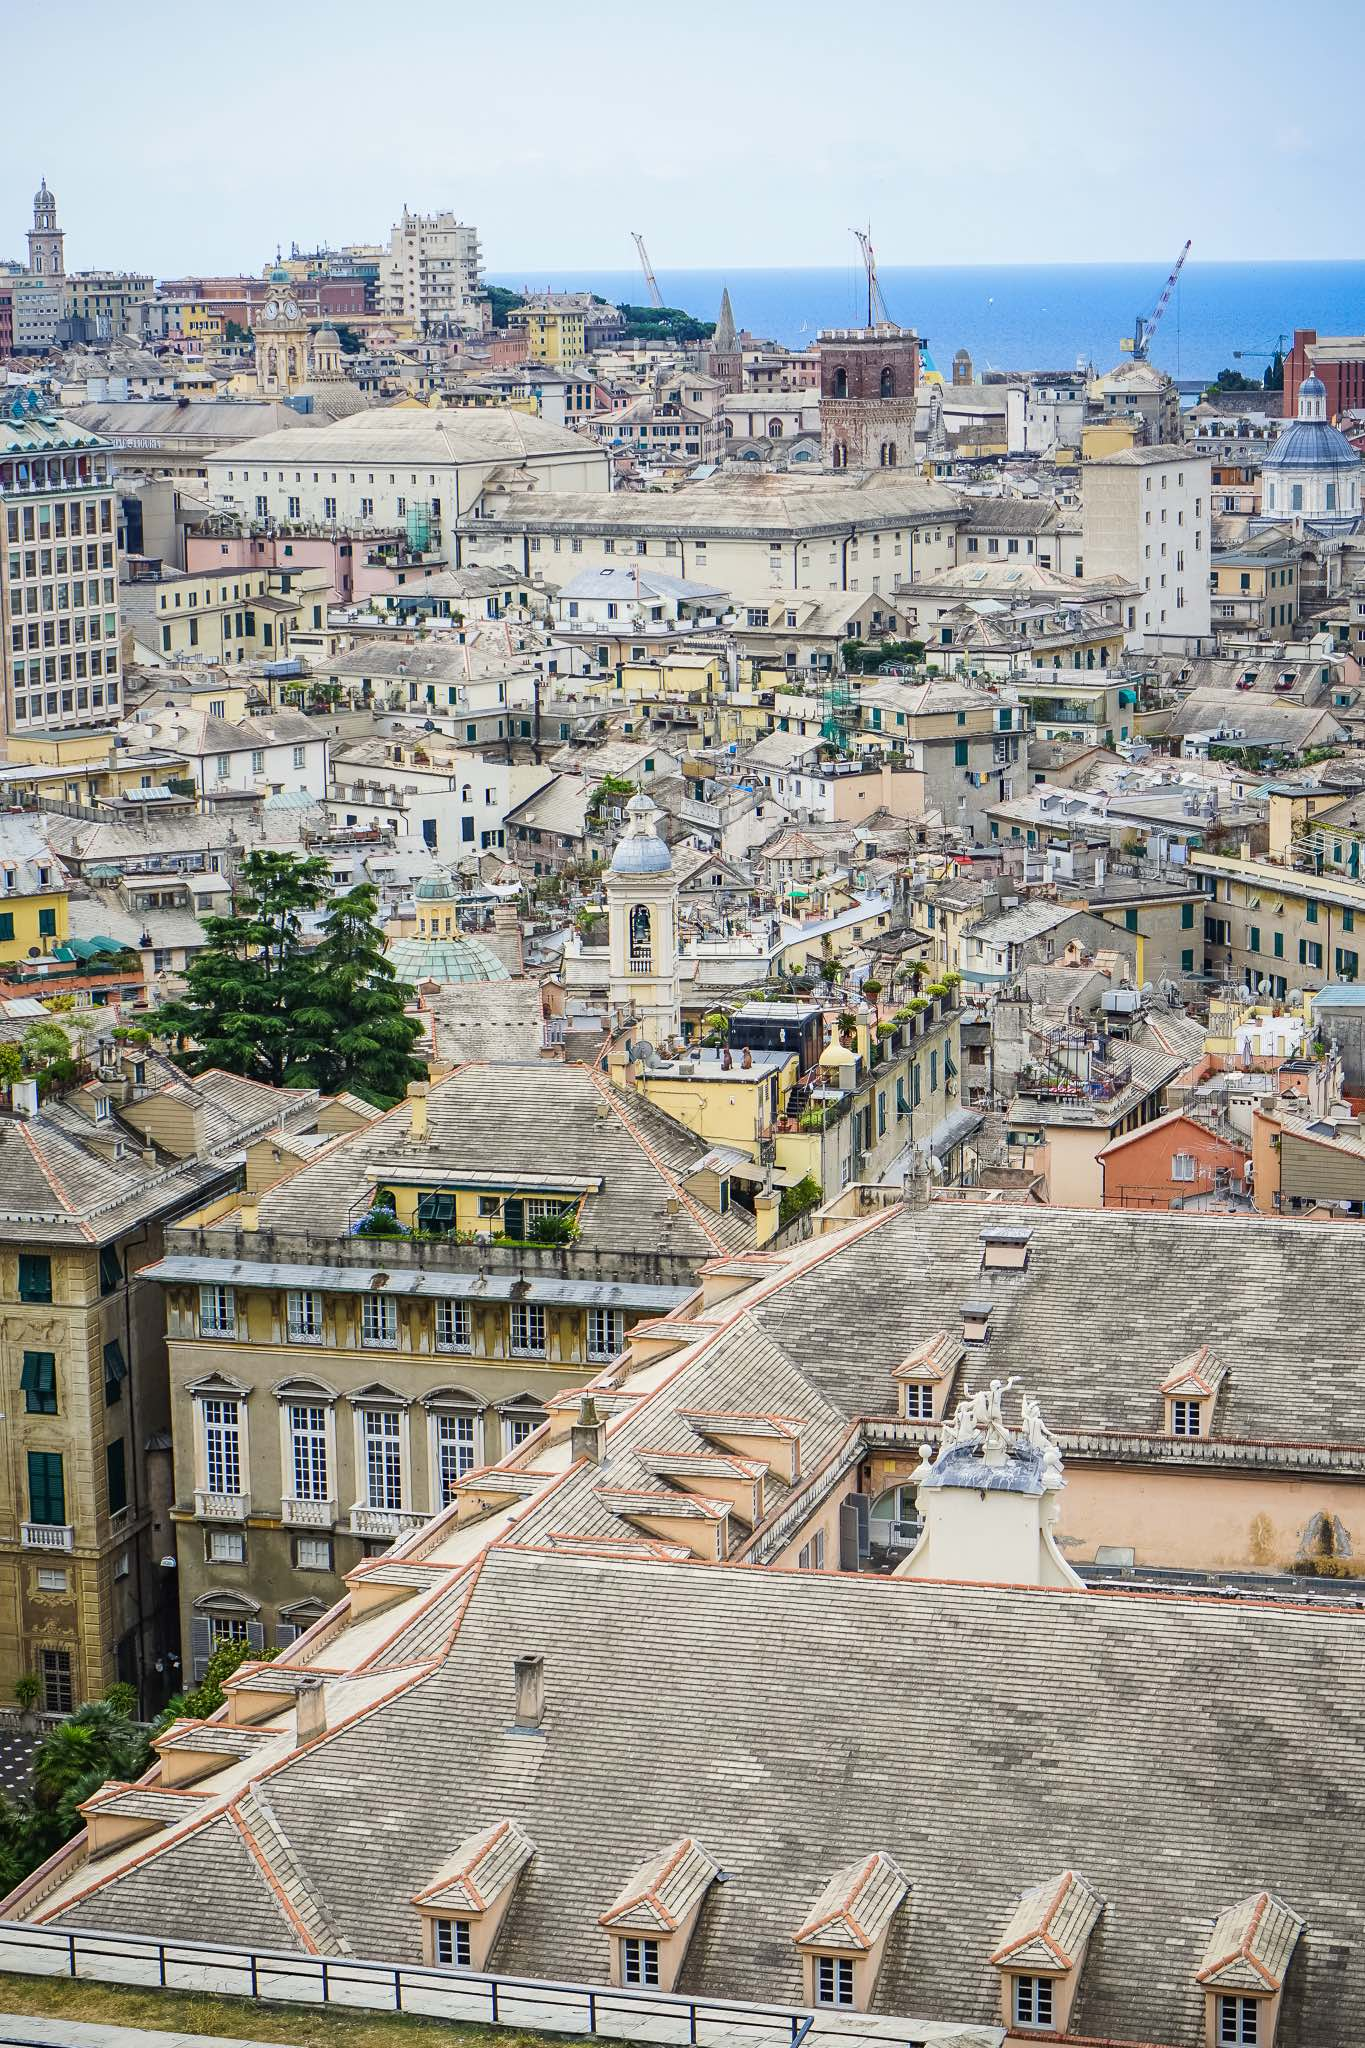 The views over Genoa from the panoramic terrace of Spianata Castelletto